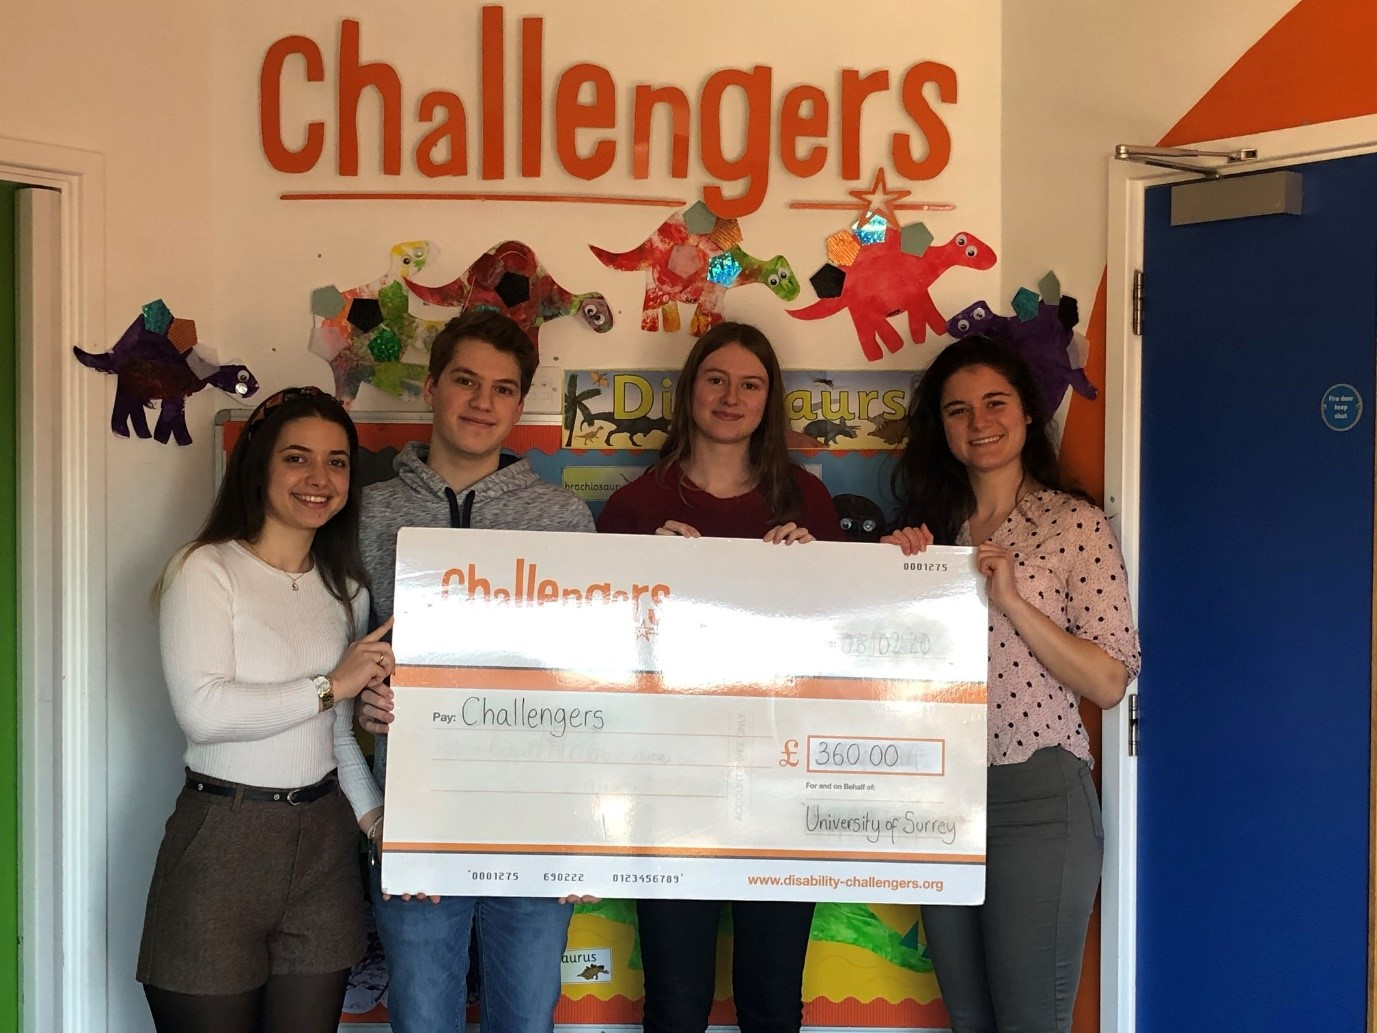 4 University of Surrey students holding a cheque for £360 for Challengers